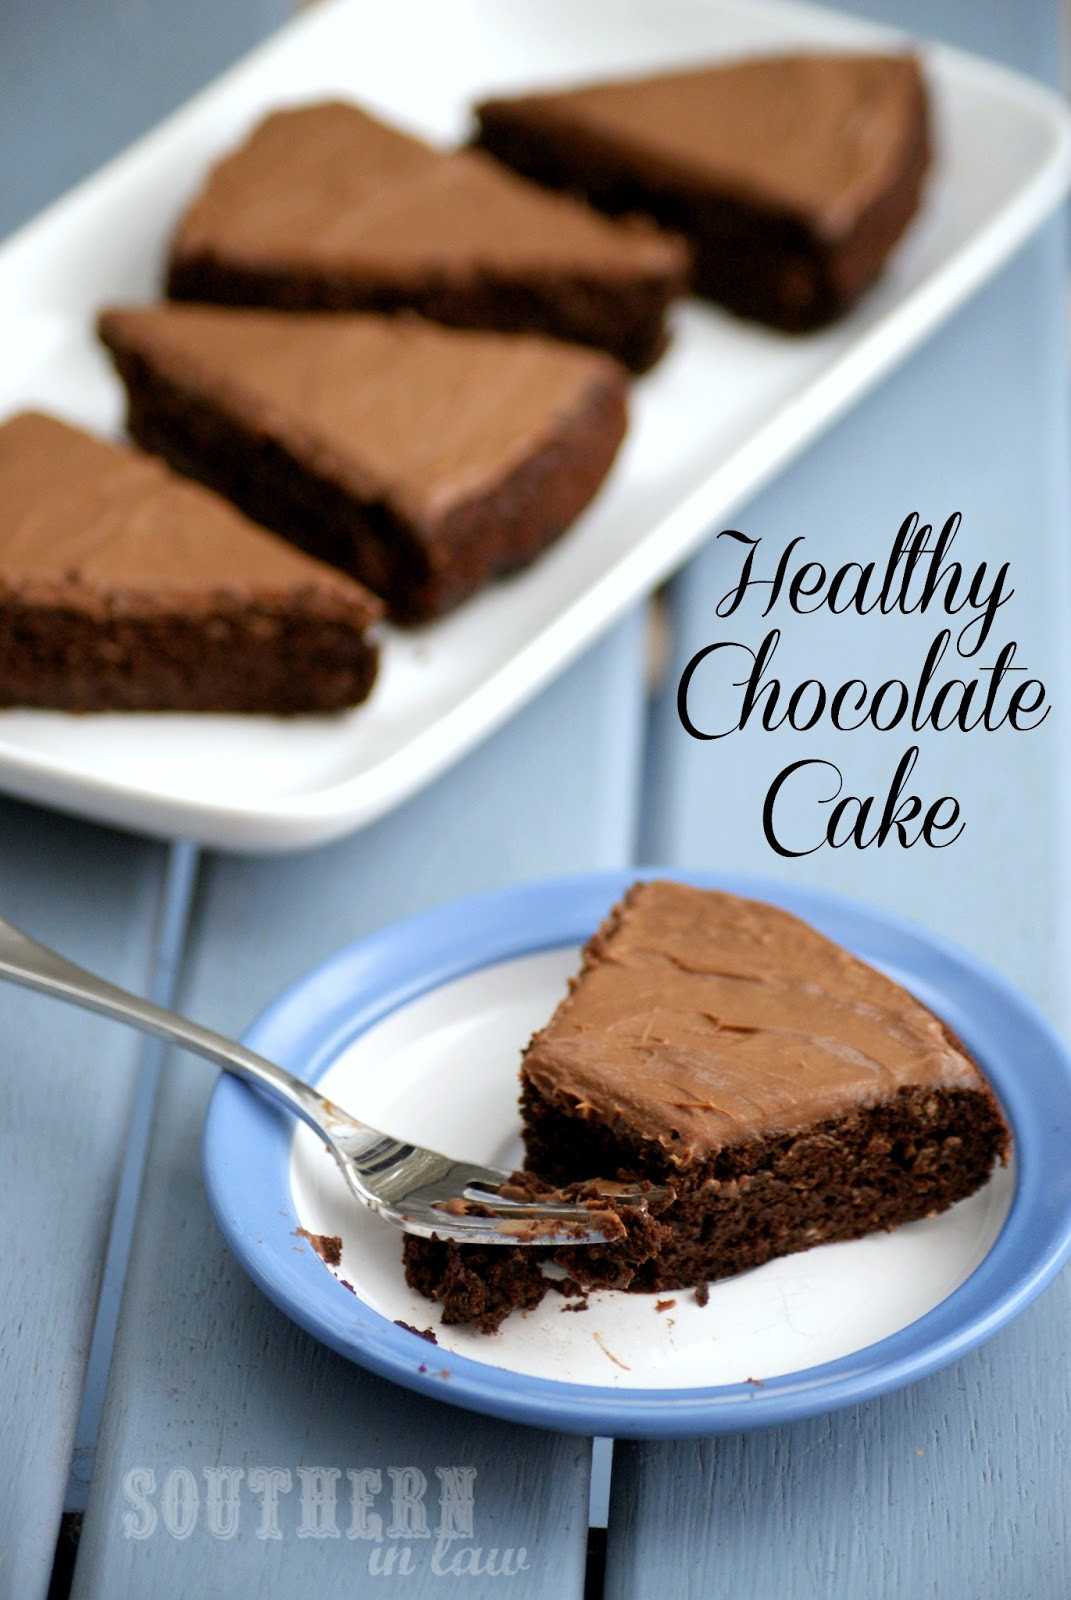 Healthy Chocolate Cake Recipe  Southern In Law Recipe Healthy Chocolate Cake Vegan too